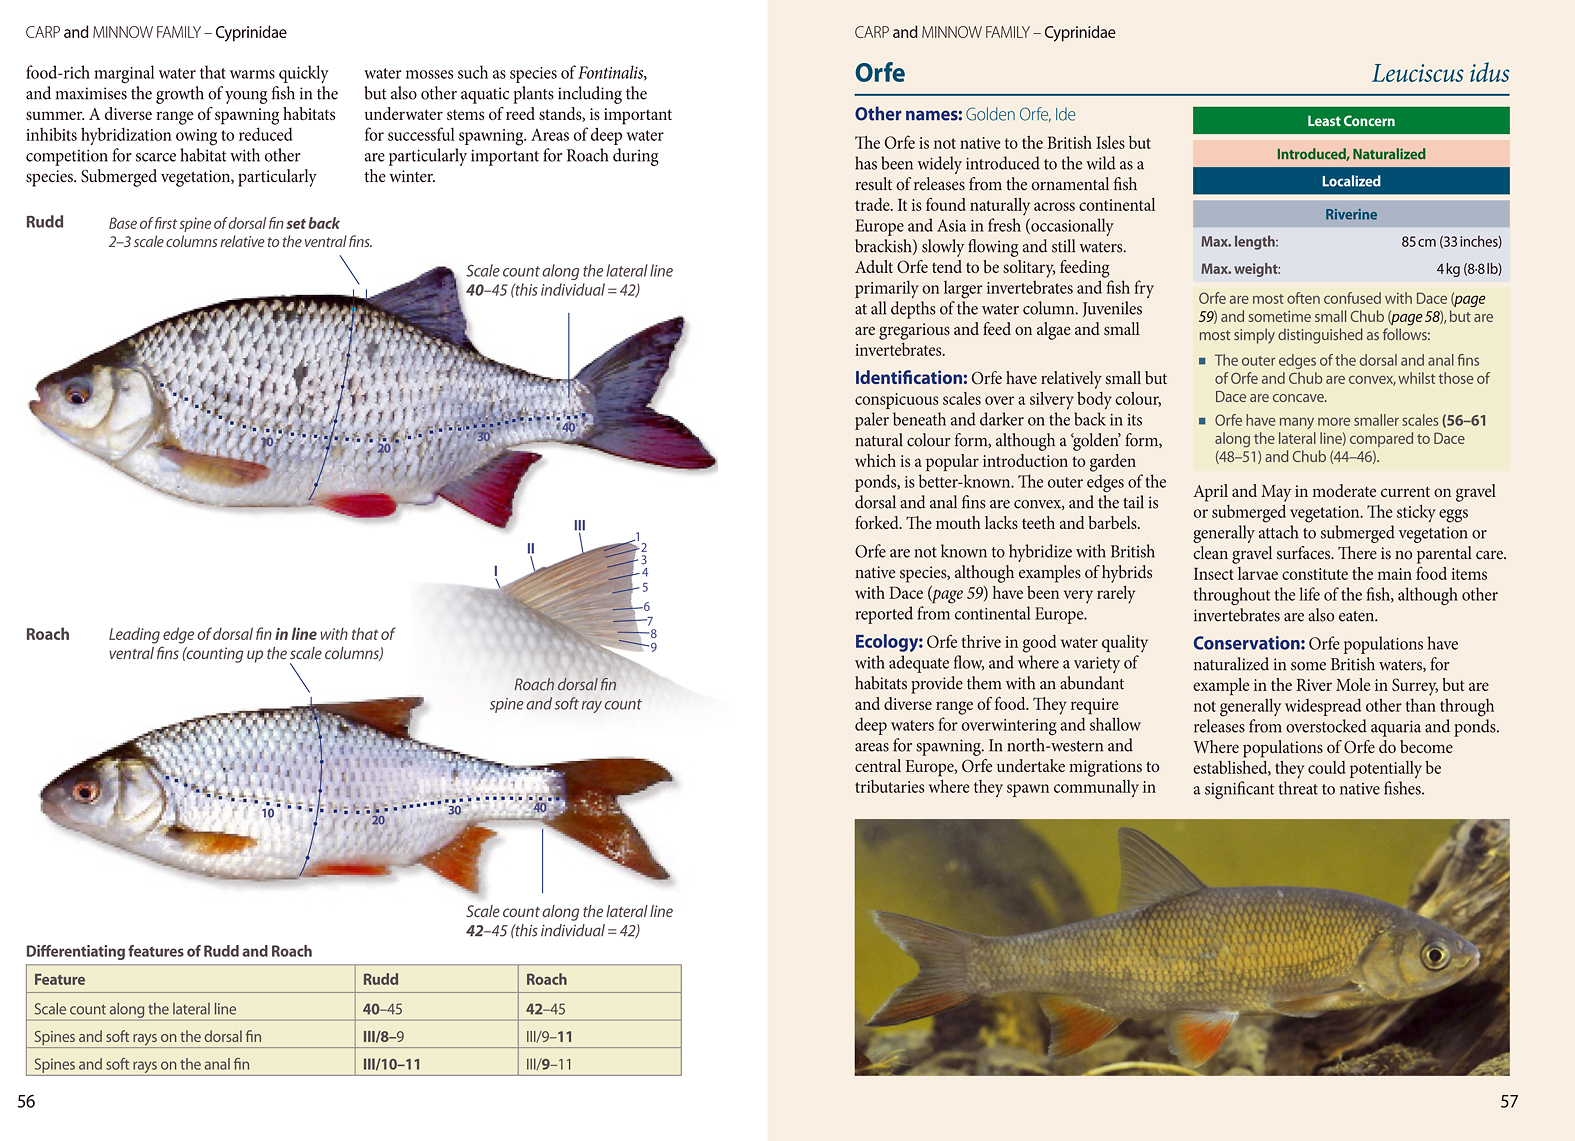 As an in-depth reference book on native fish species, this one's hard to beat